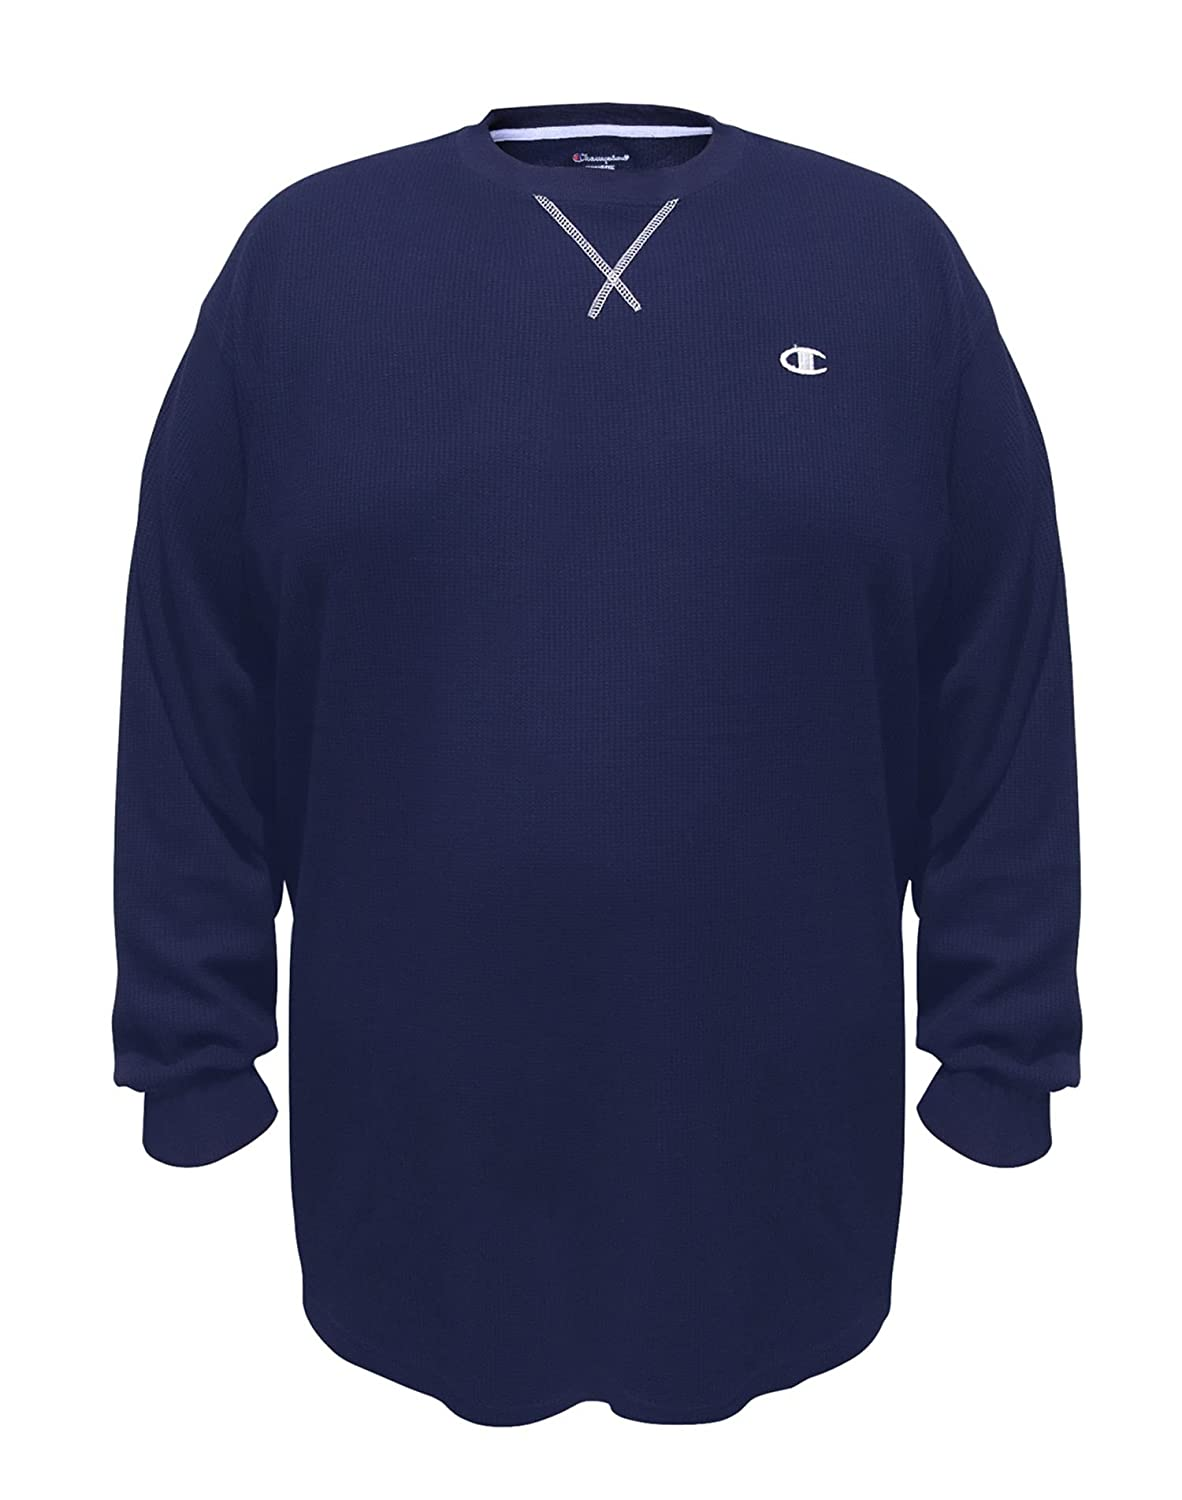 Champion Big Tall Long-Sleeve Thermal Tee, CH319, 4XL, Navy